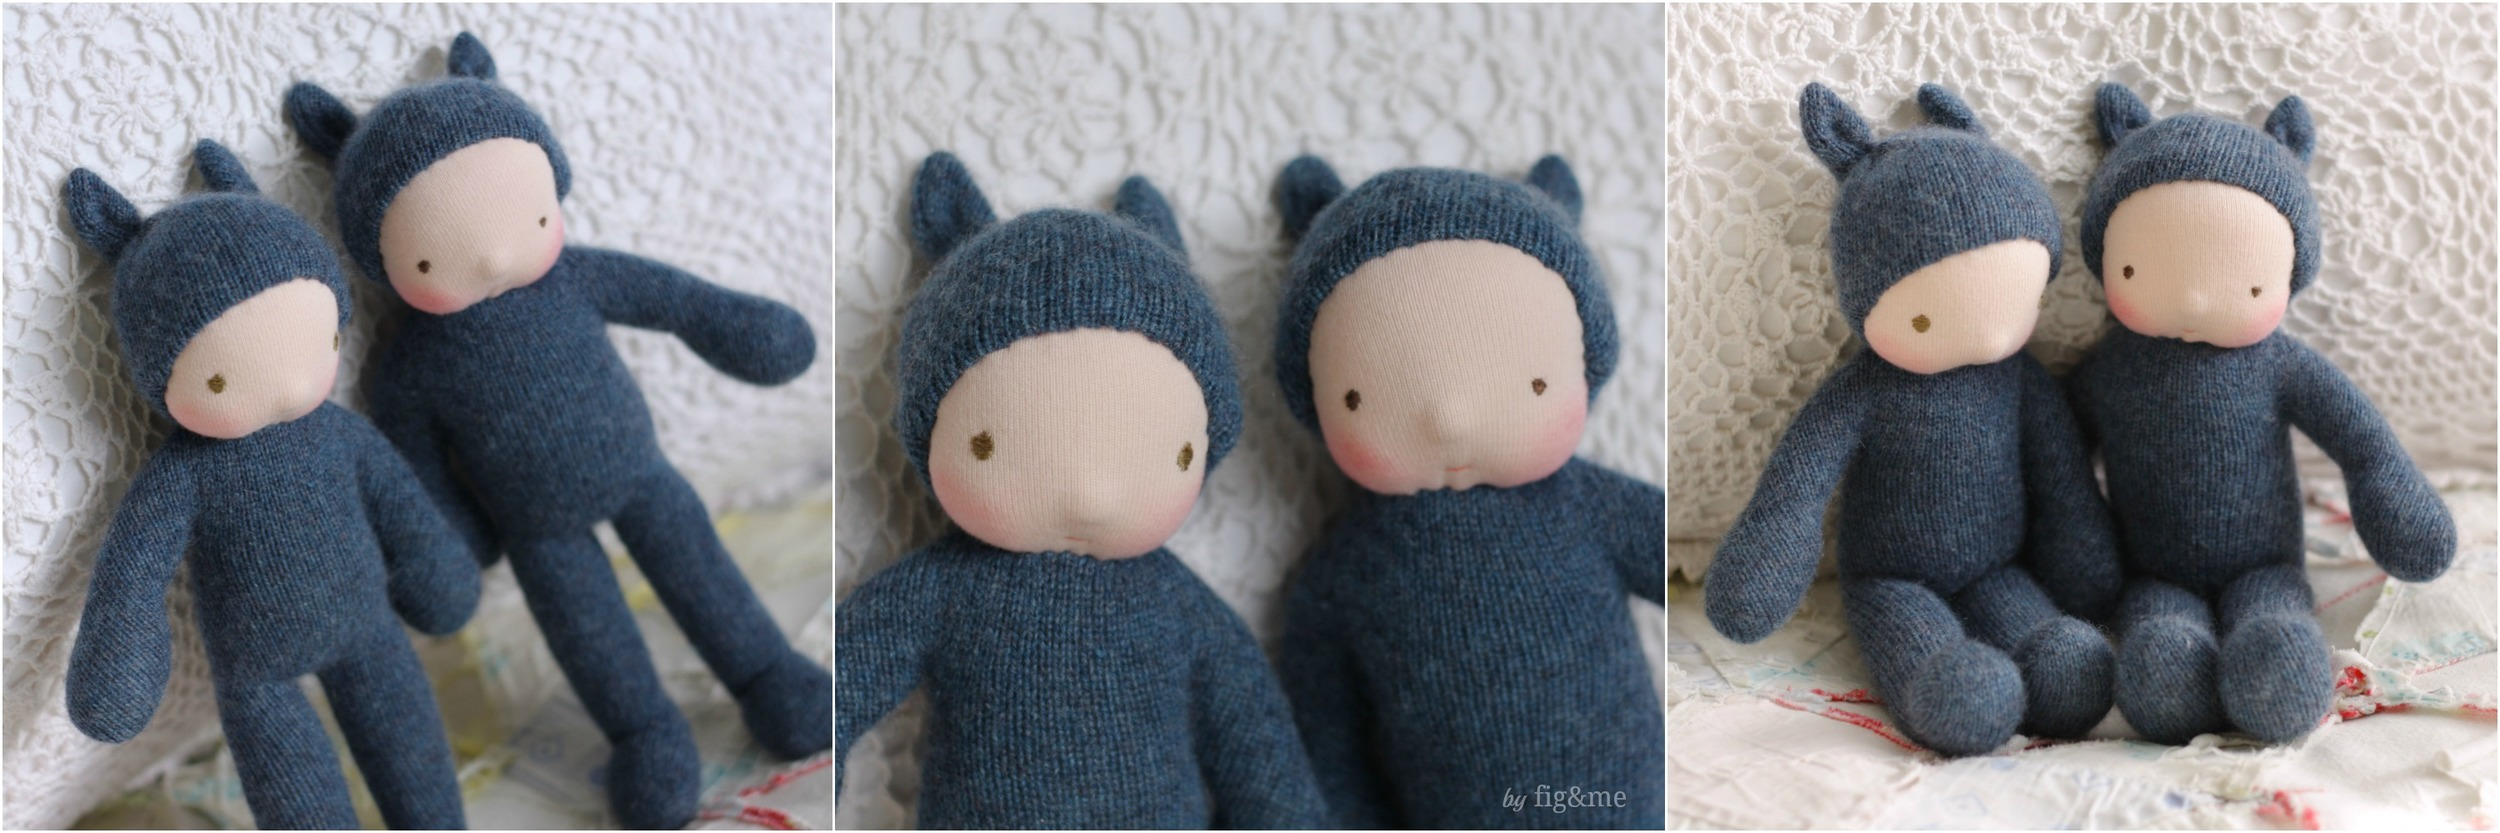 Wee Blue Babies, by Fig&me